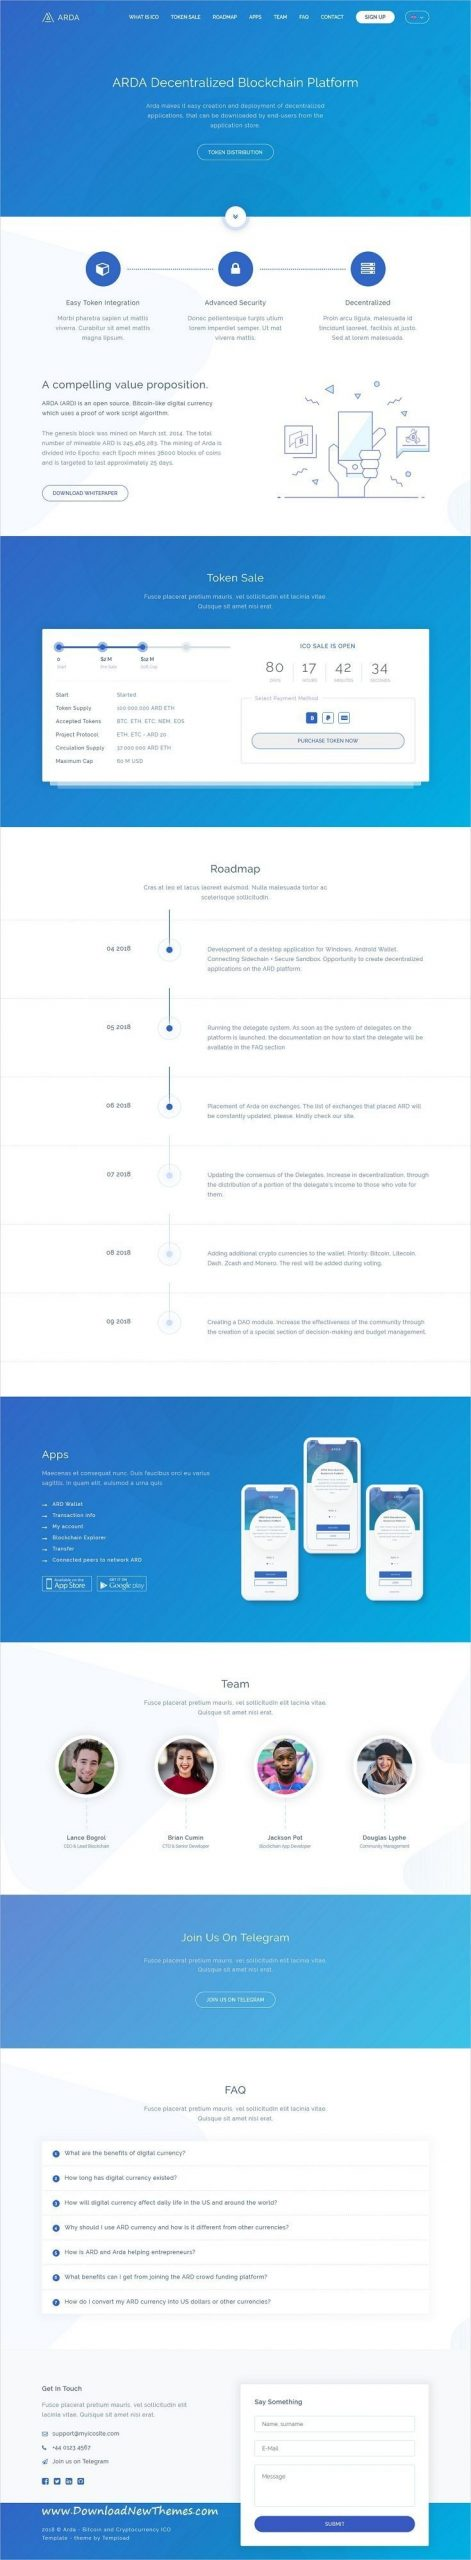 arda bitcoin and cryptocurrency ico html template | design